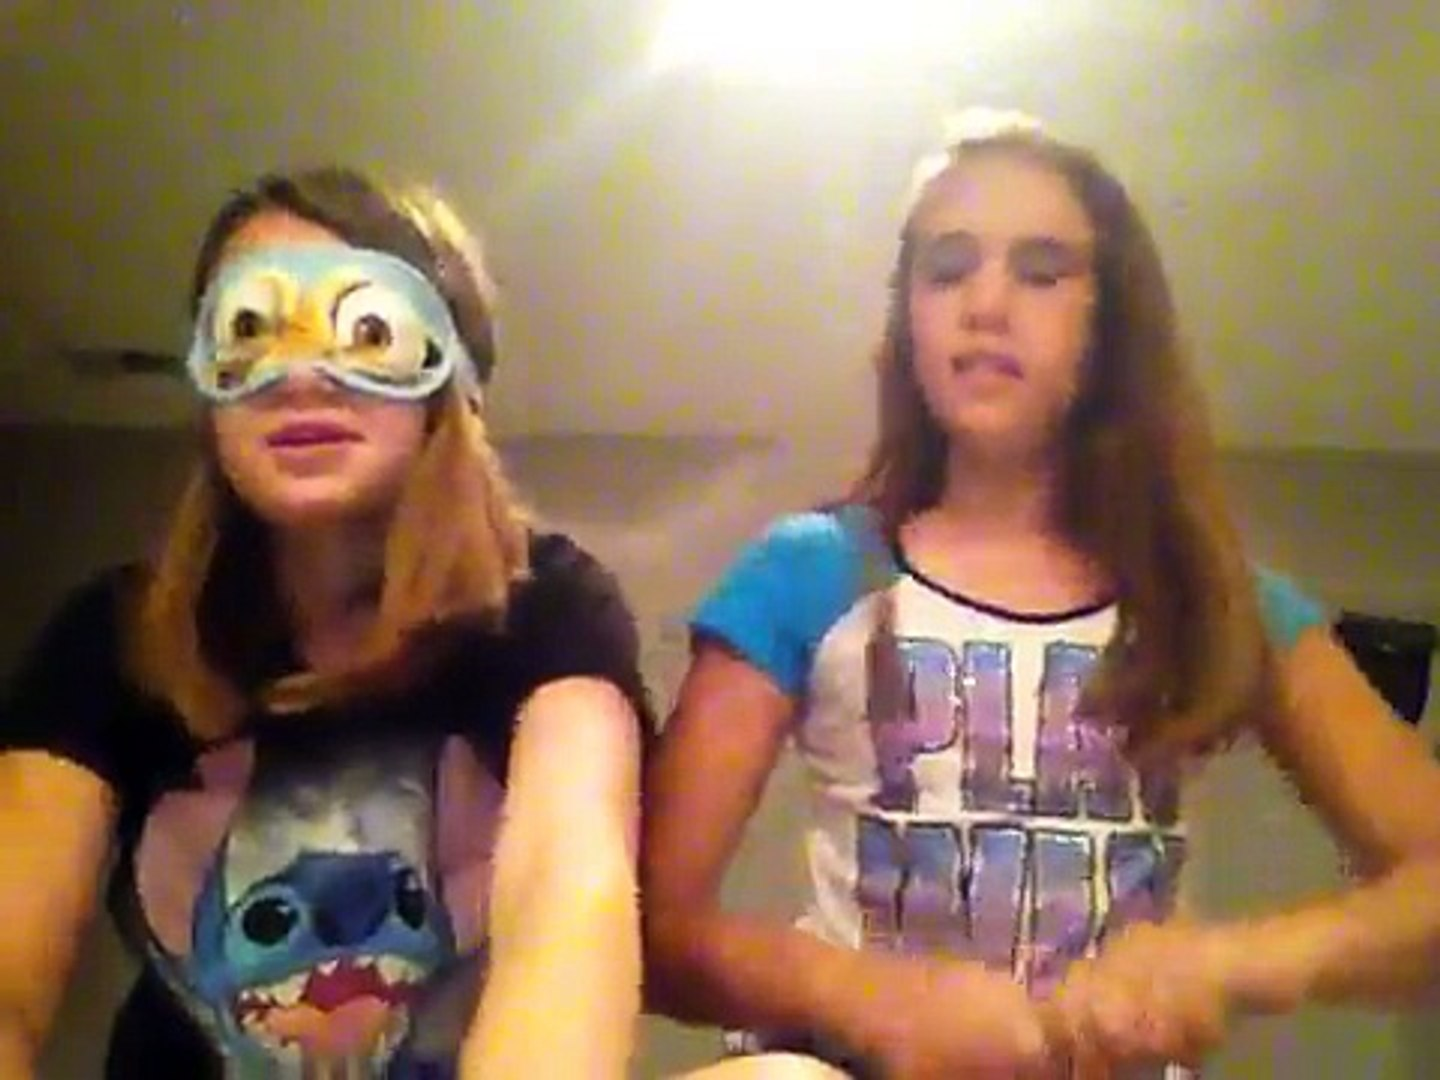 Bailey and Maddie's blindfolded makeup challenge